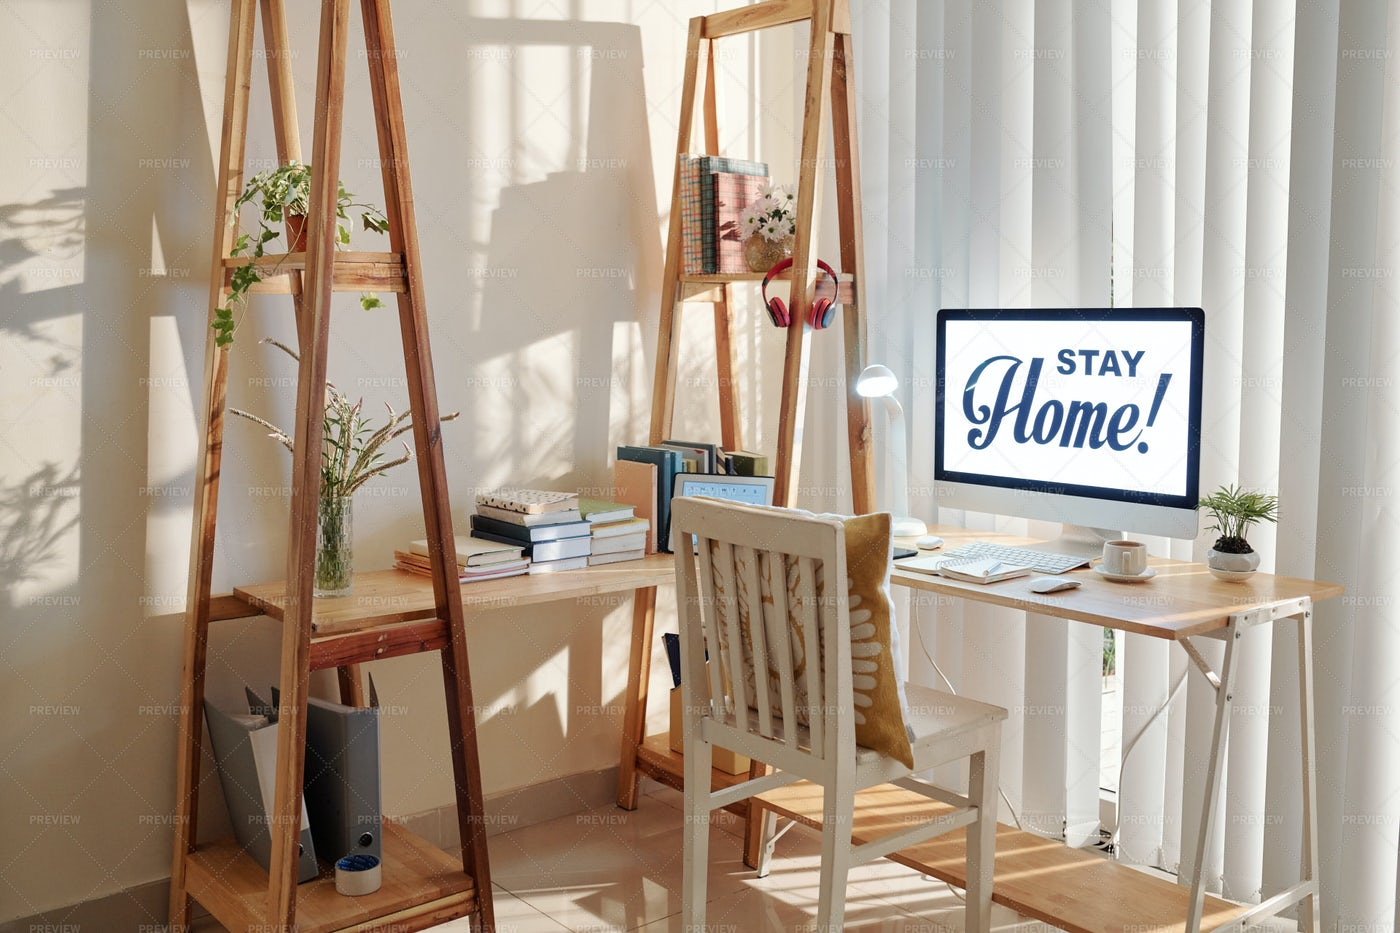 Freelance Home Office Space: Stock Photos